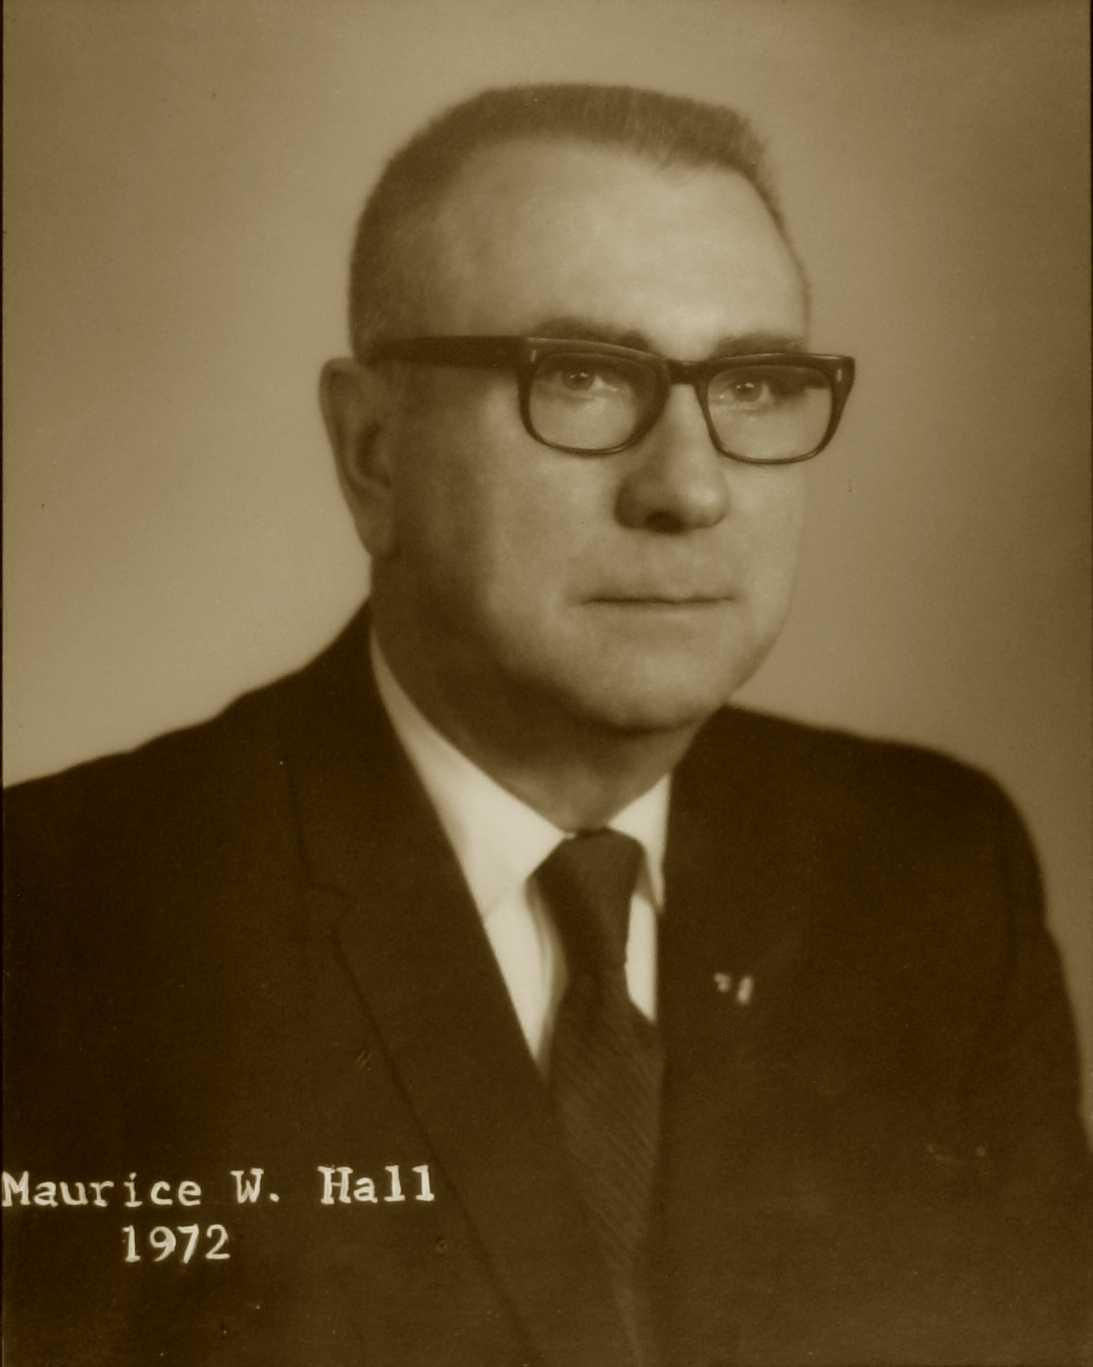 Maurice W. Hall, 1972